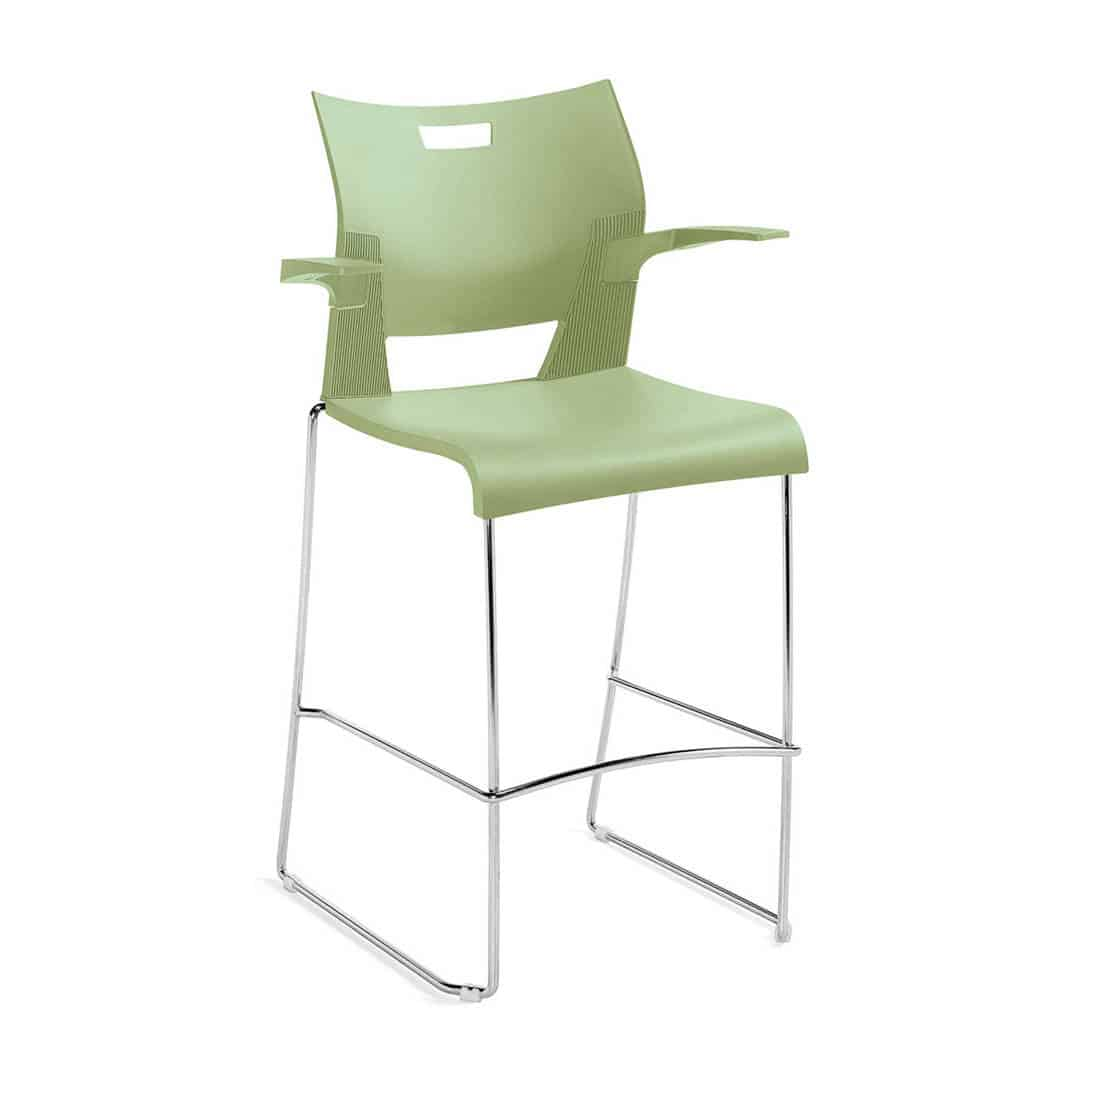 Global Duet Green Bar Height Stool with Arms and Poly Seat and Back fire code